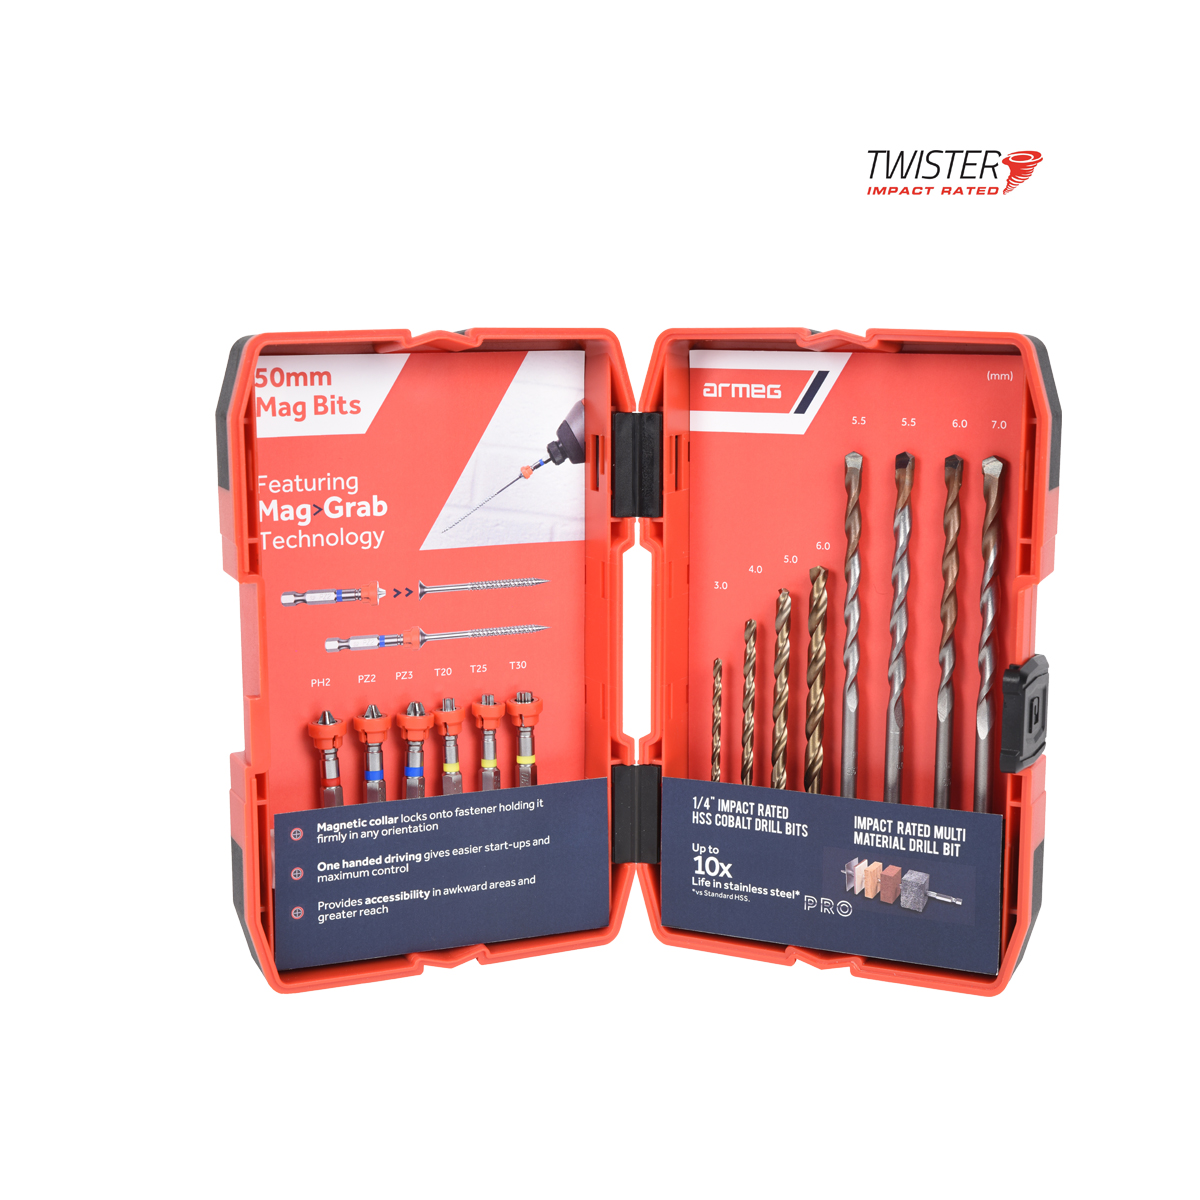 14 Piece Twister Drill-Drive Set